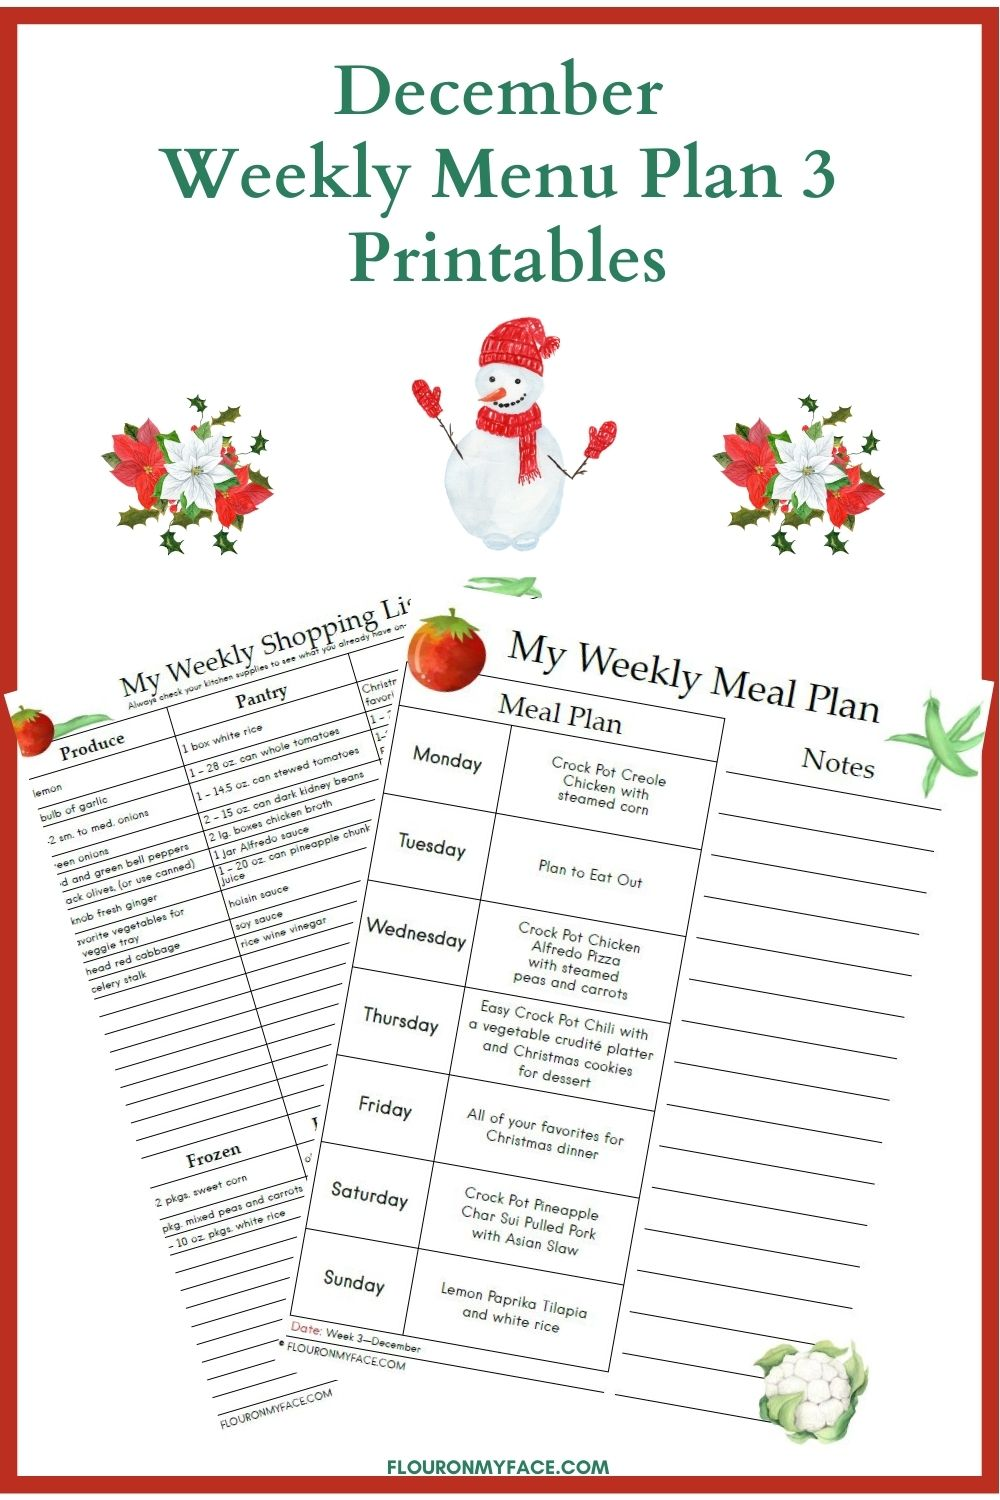 December Weekly Meal Plan Preview Image.